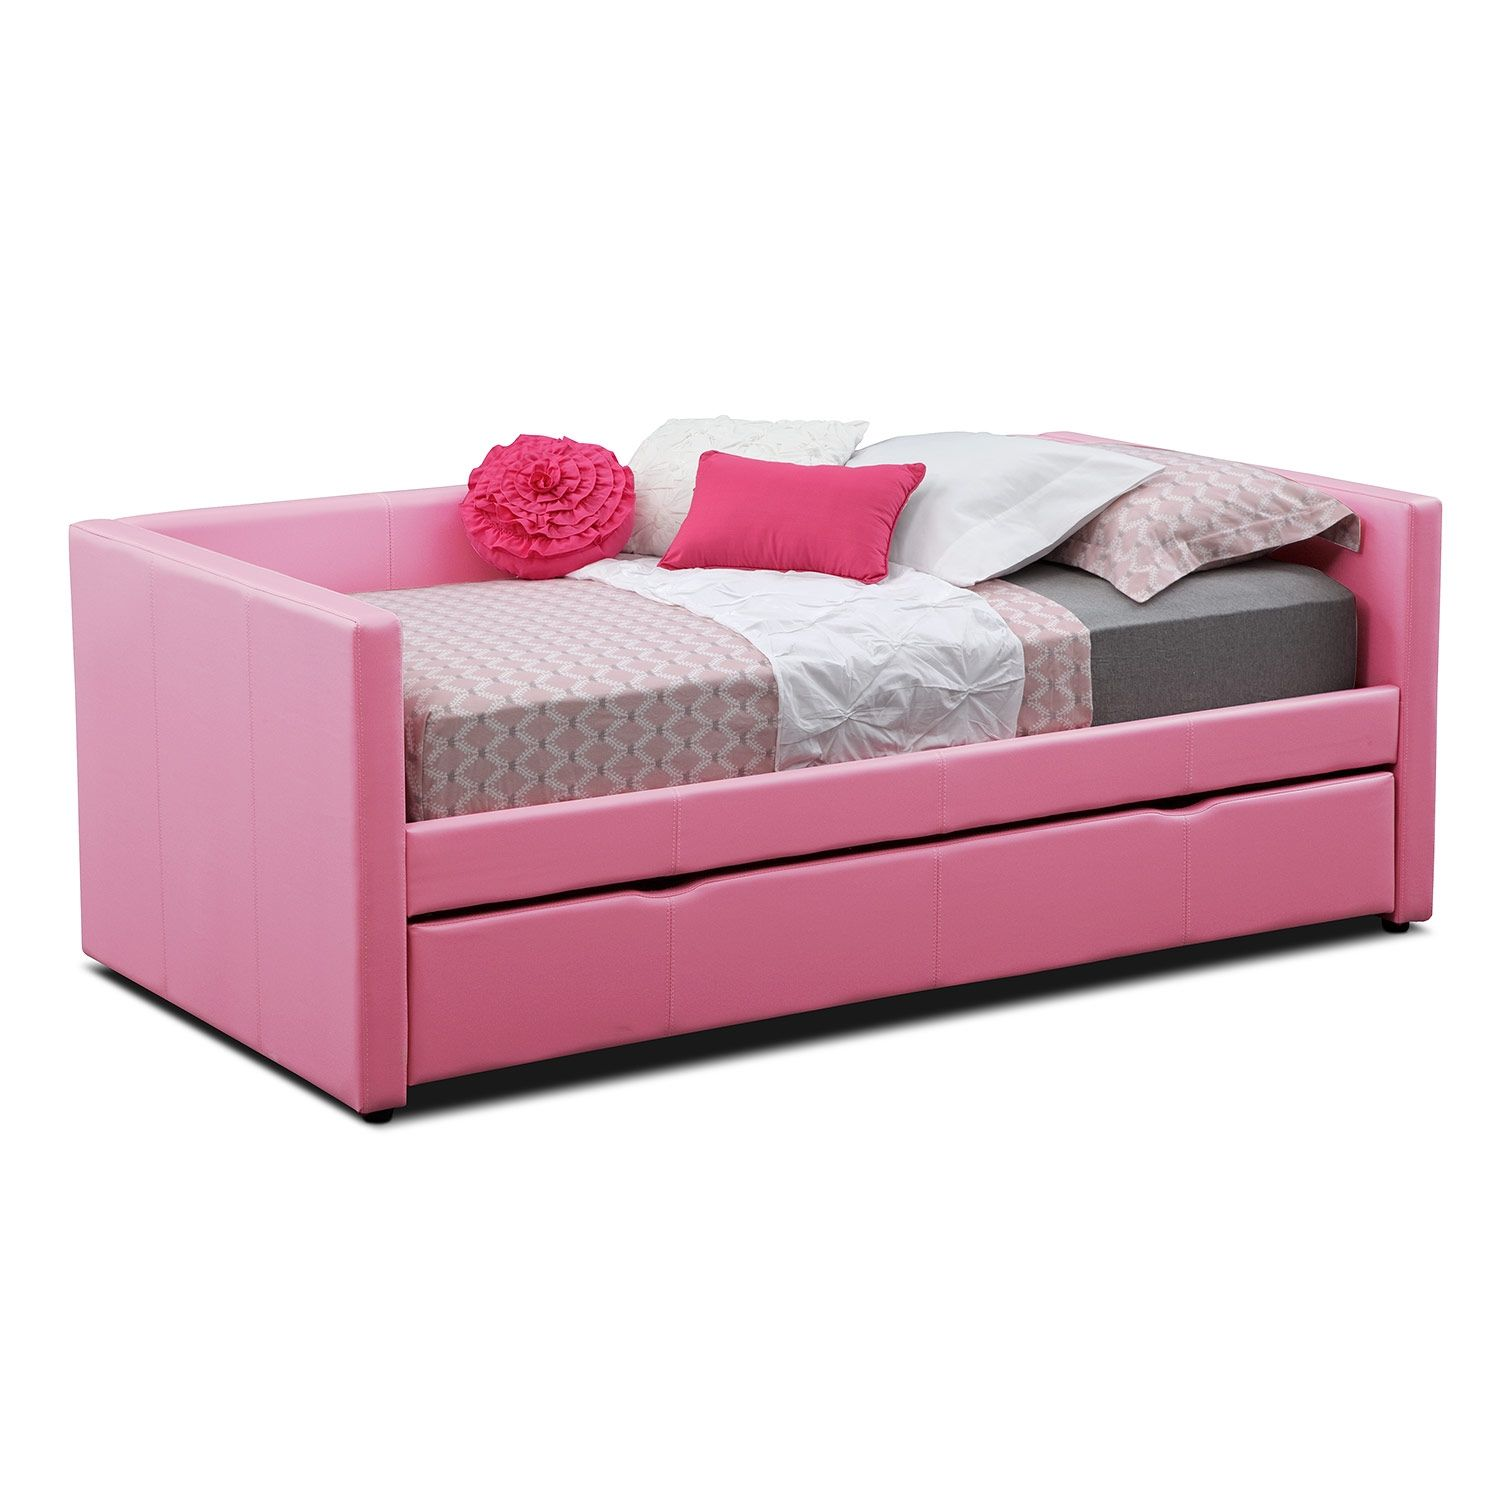 Carey Twin Daybed With Trundle Value City Furniture With Images